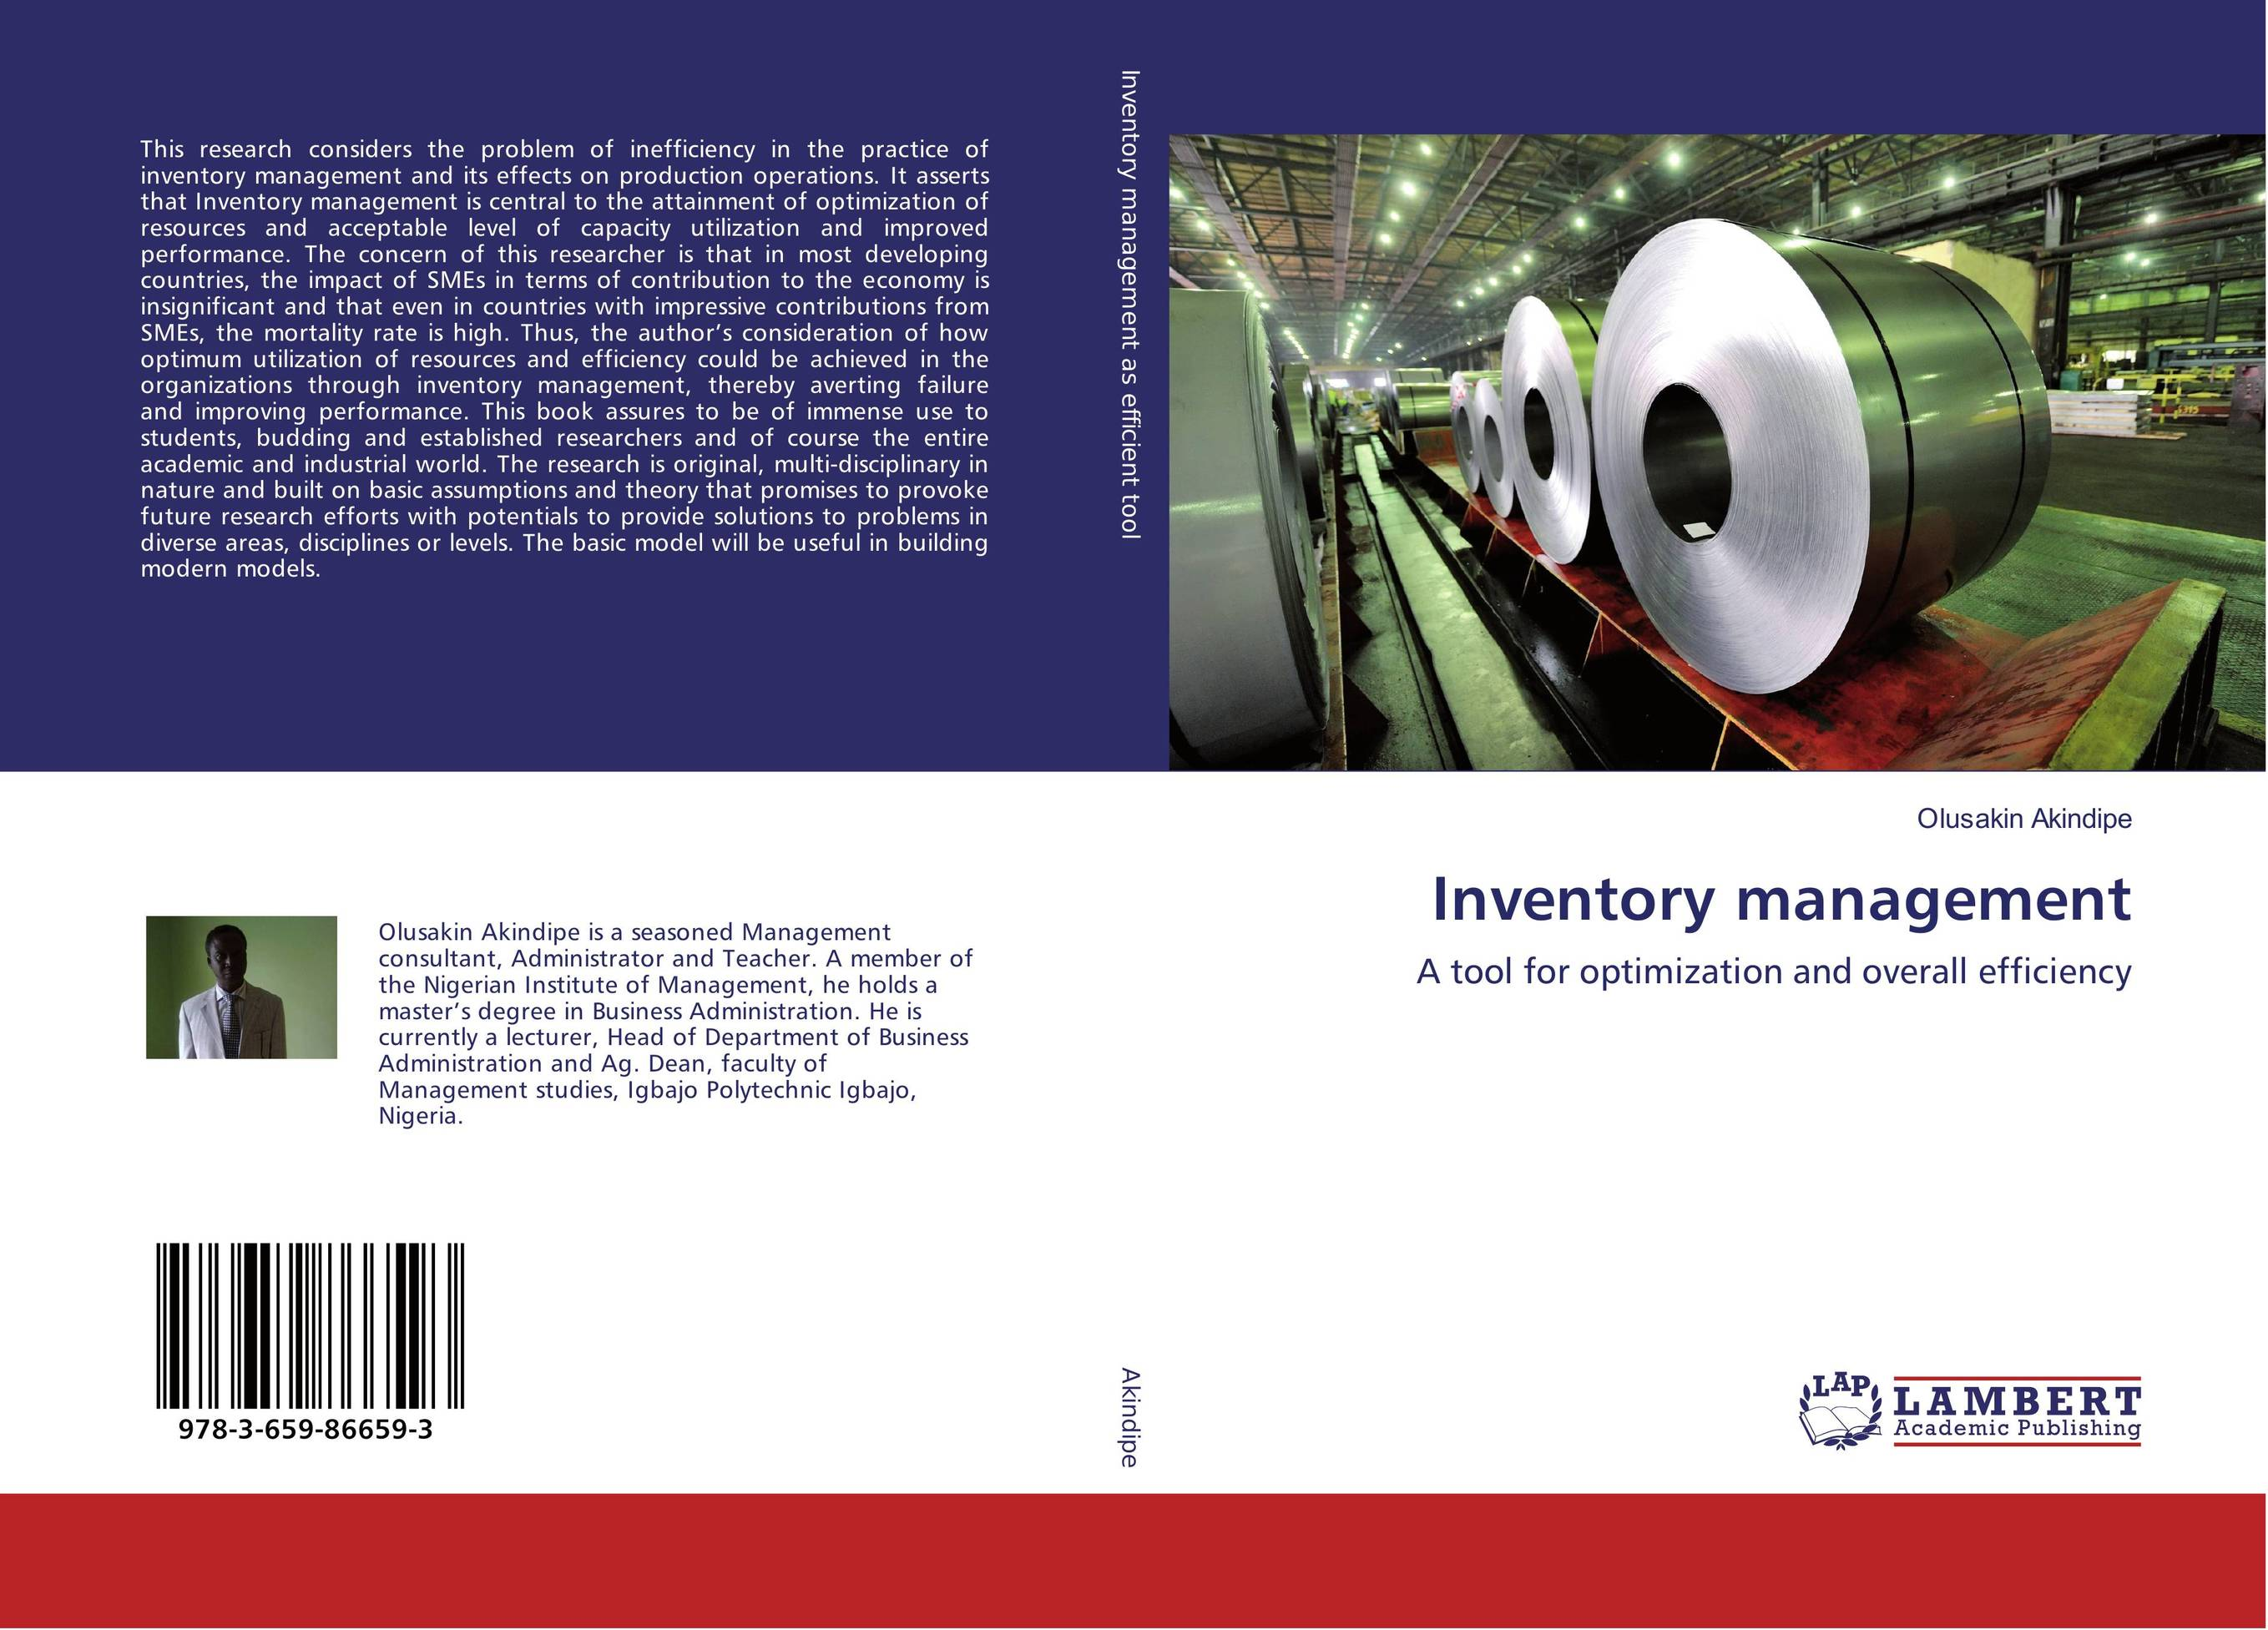 Inventory management best practice in inventory management